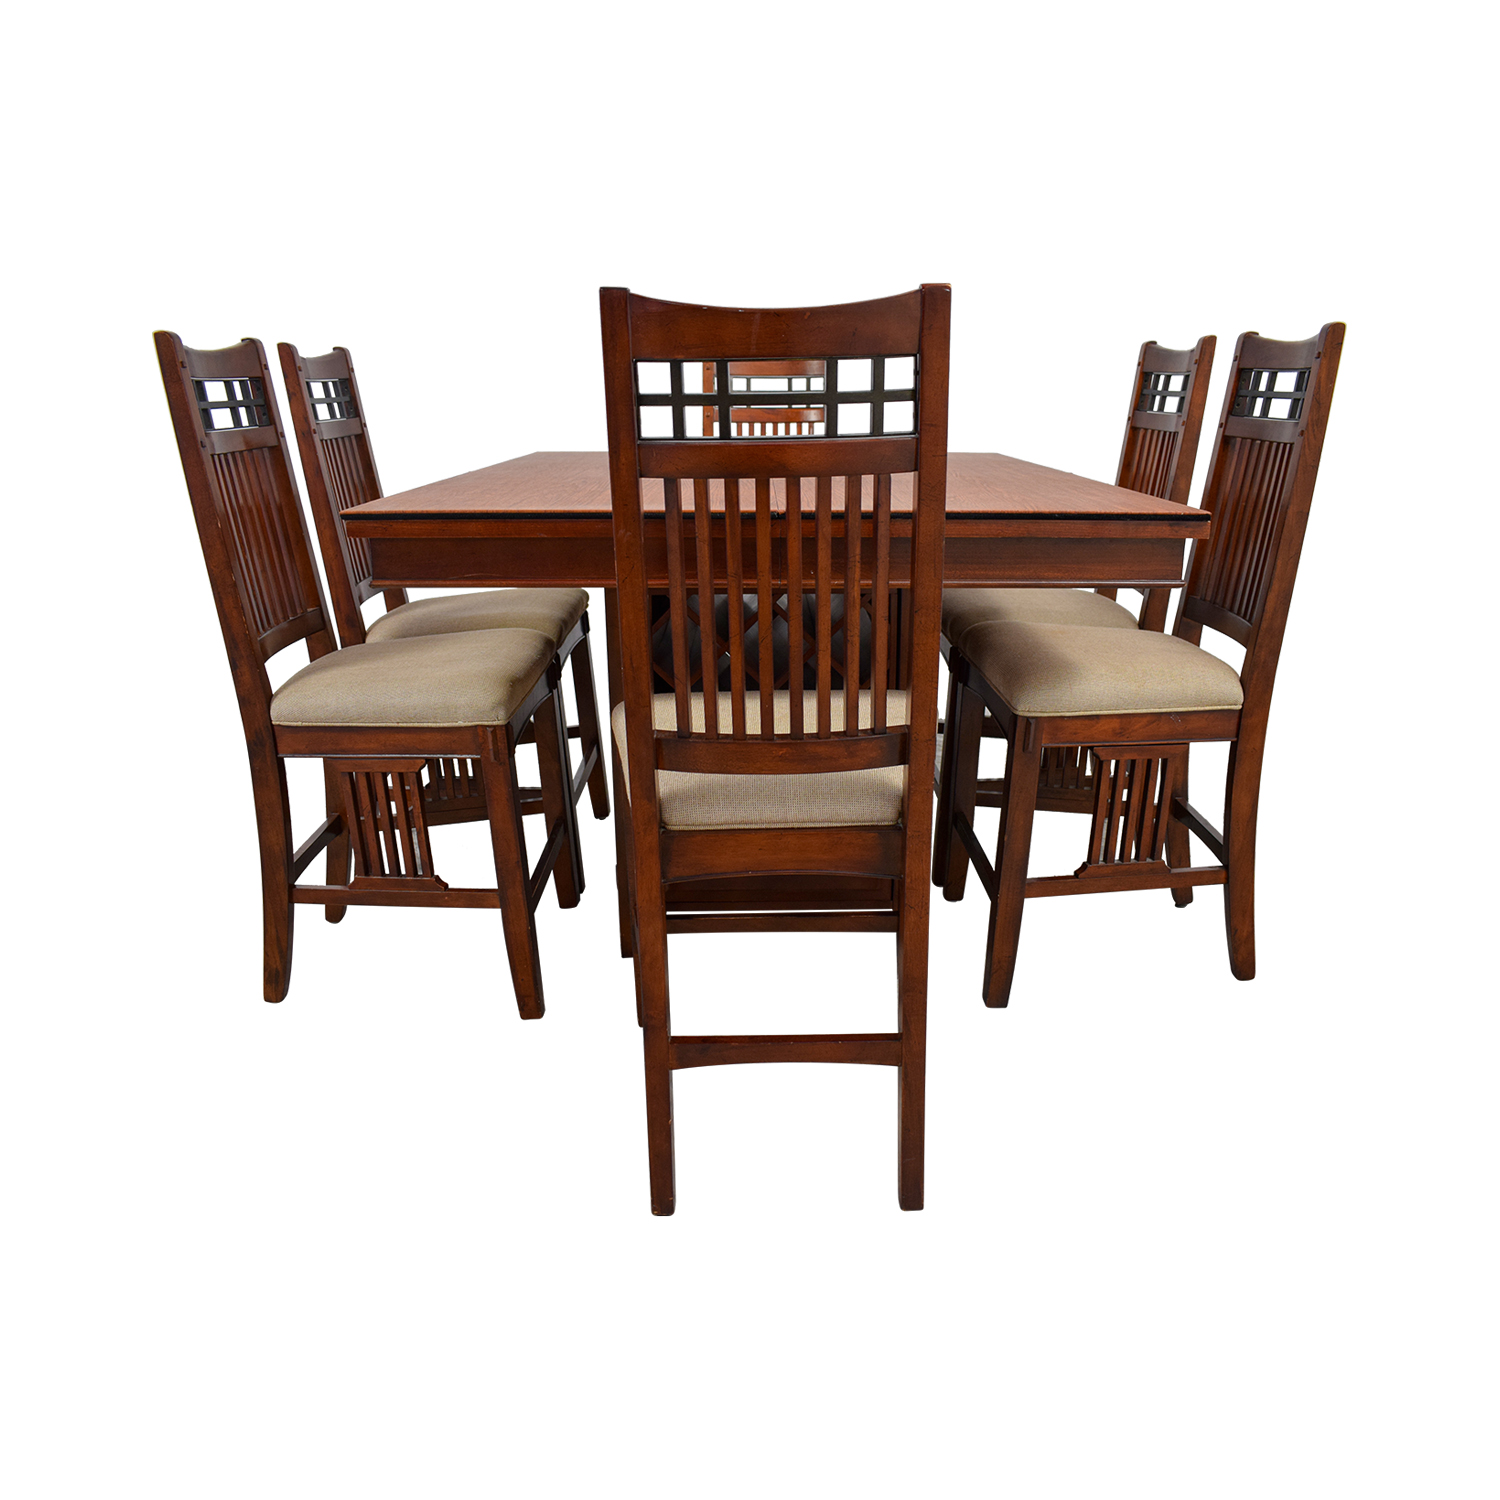 Wine Rack Dining Table: Counter Height Wine Rack Dining Set / Tables